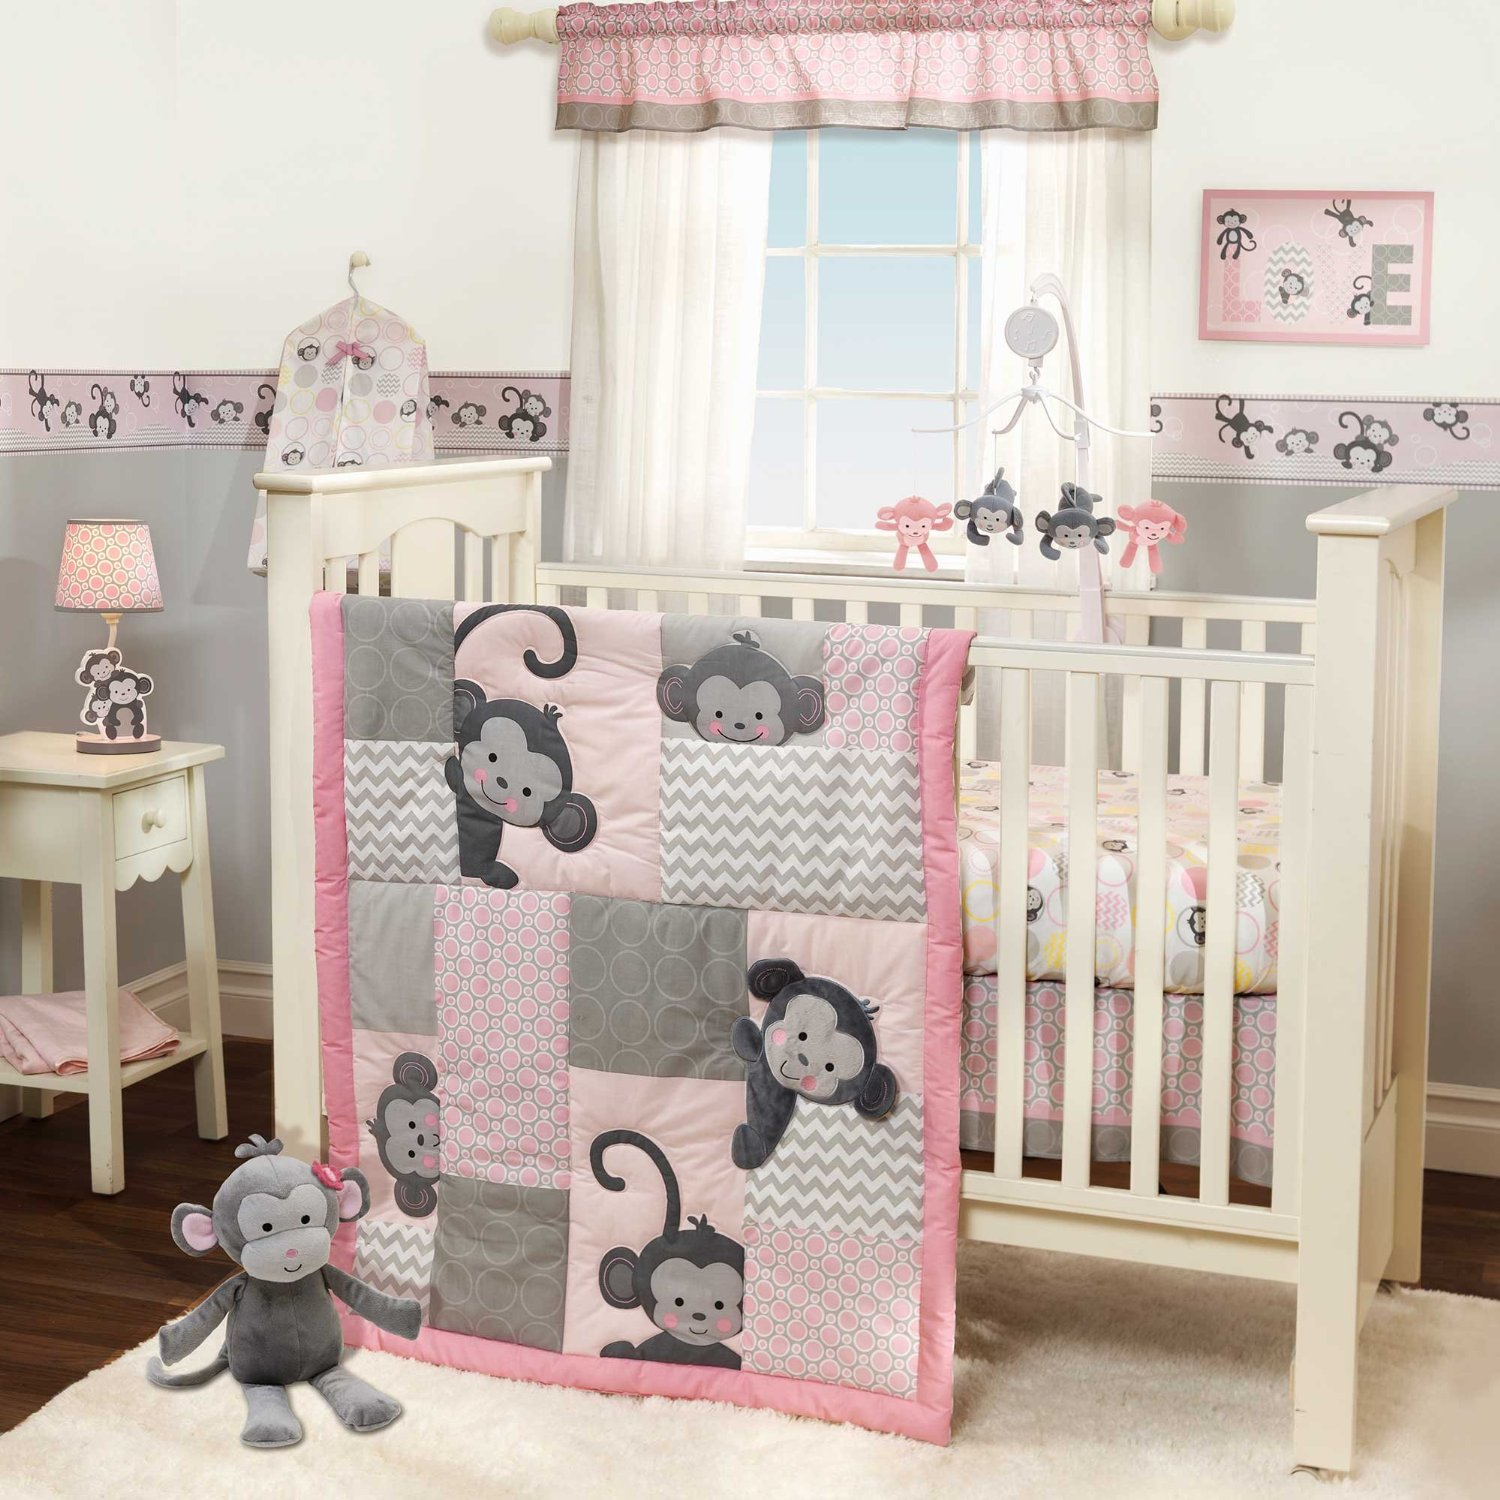 Girls monkey crib bedding Baby girl bedding